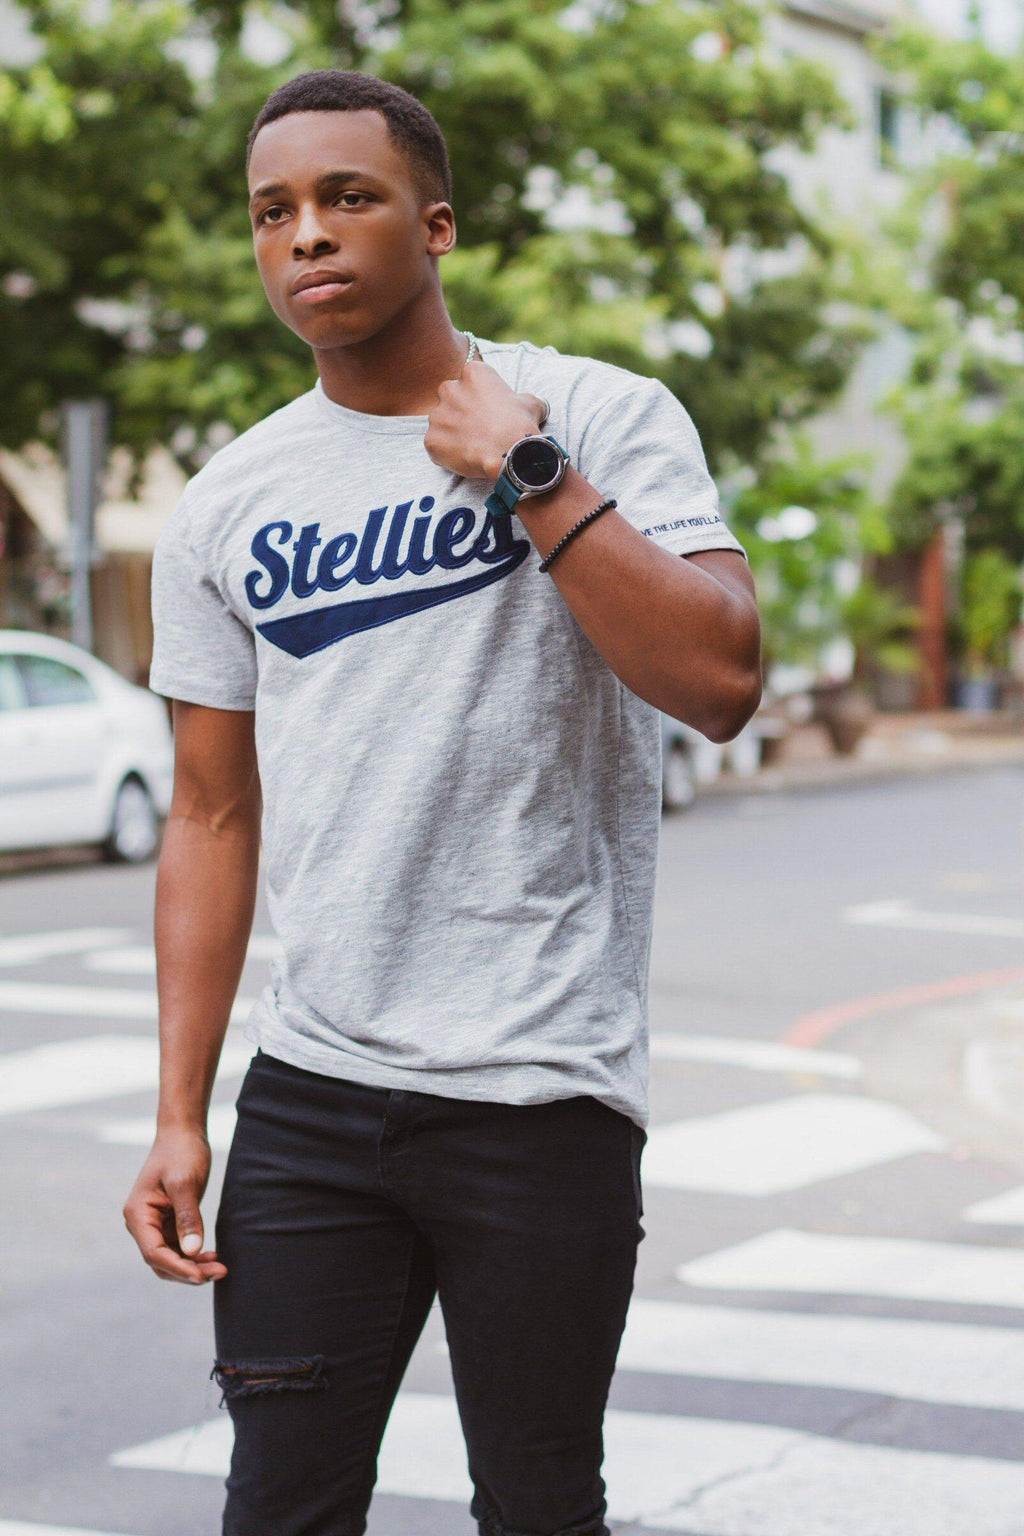 The Vintage OG Crew Neck Tee - Stellies Authentic Clothing